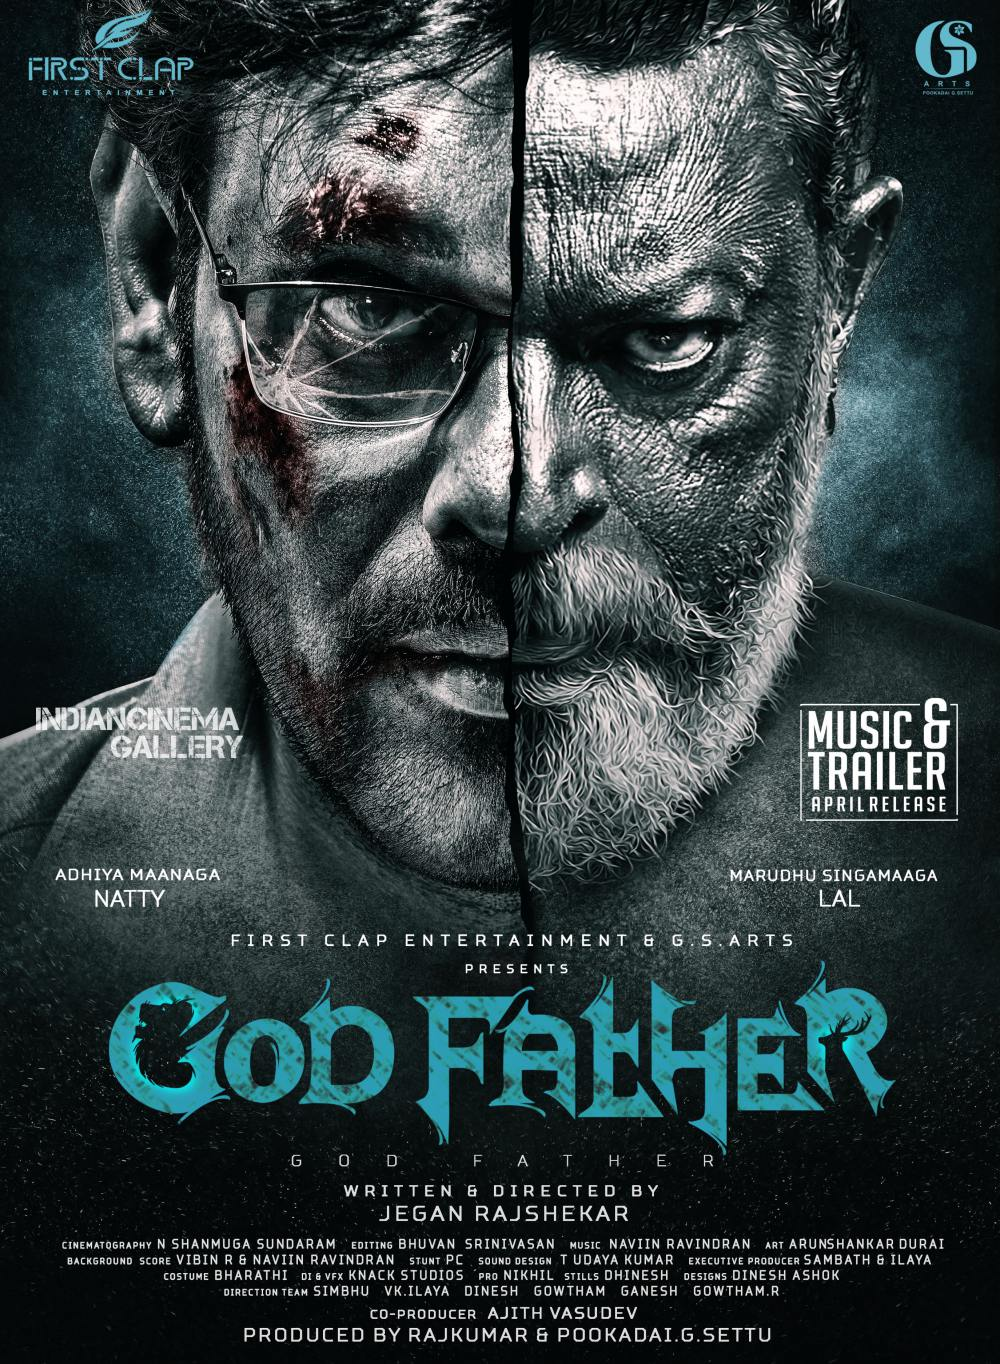 india movie poster design godfather